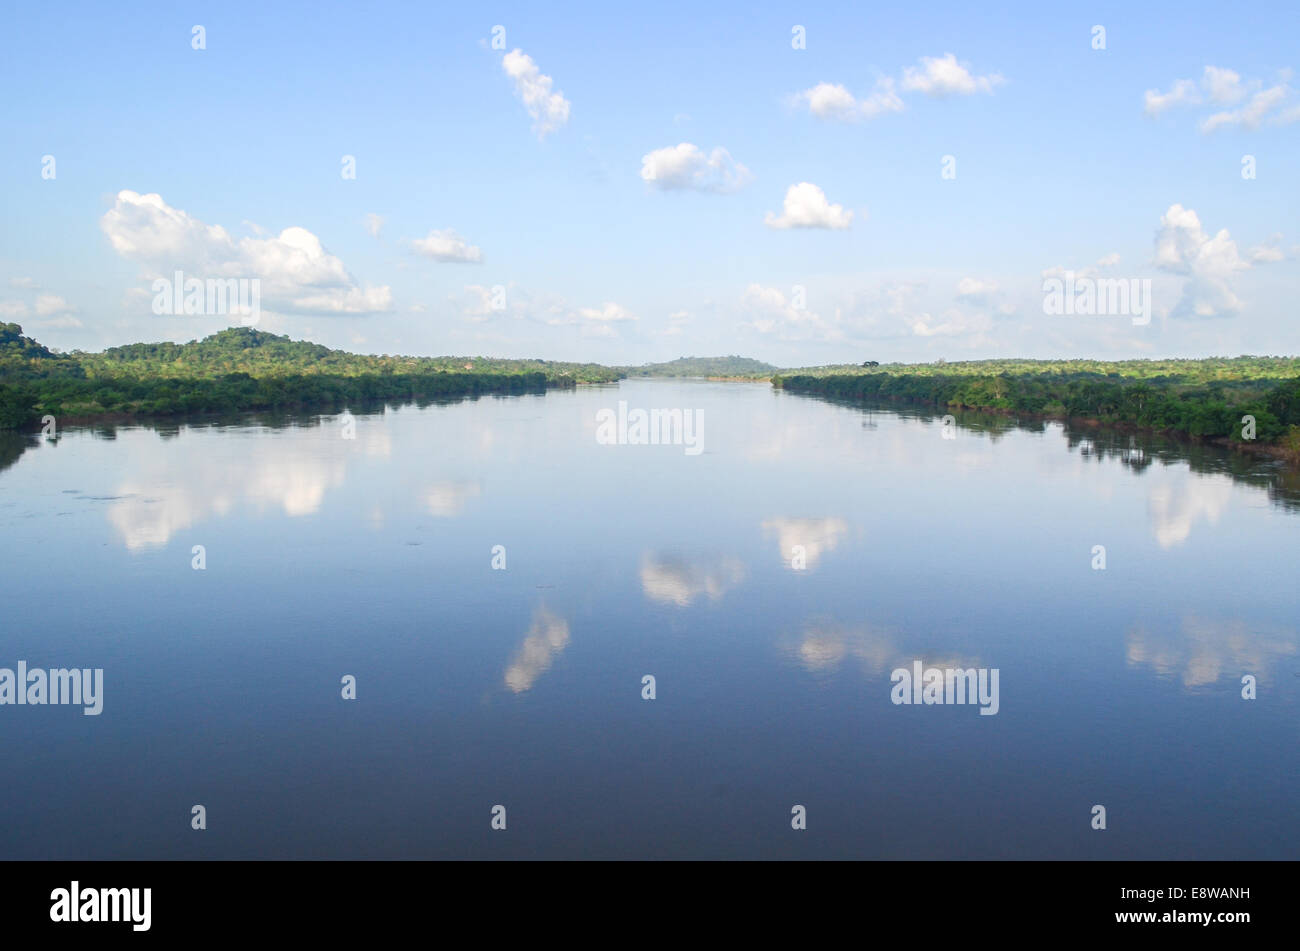 The Cross River in Nigeria from a modern bridge - Stock Image